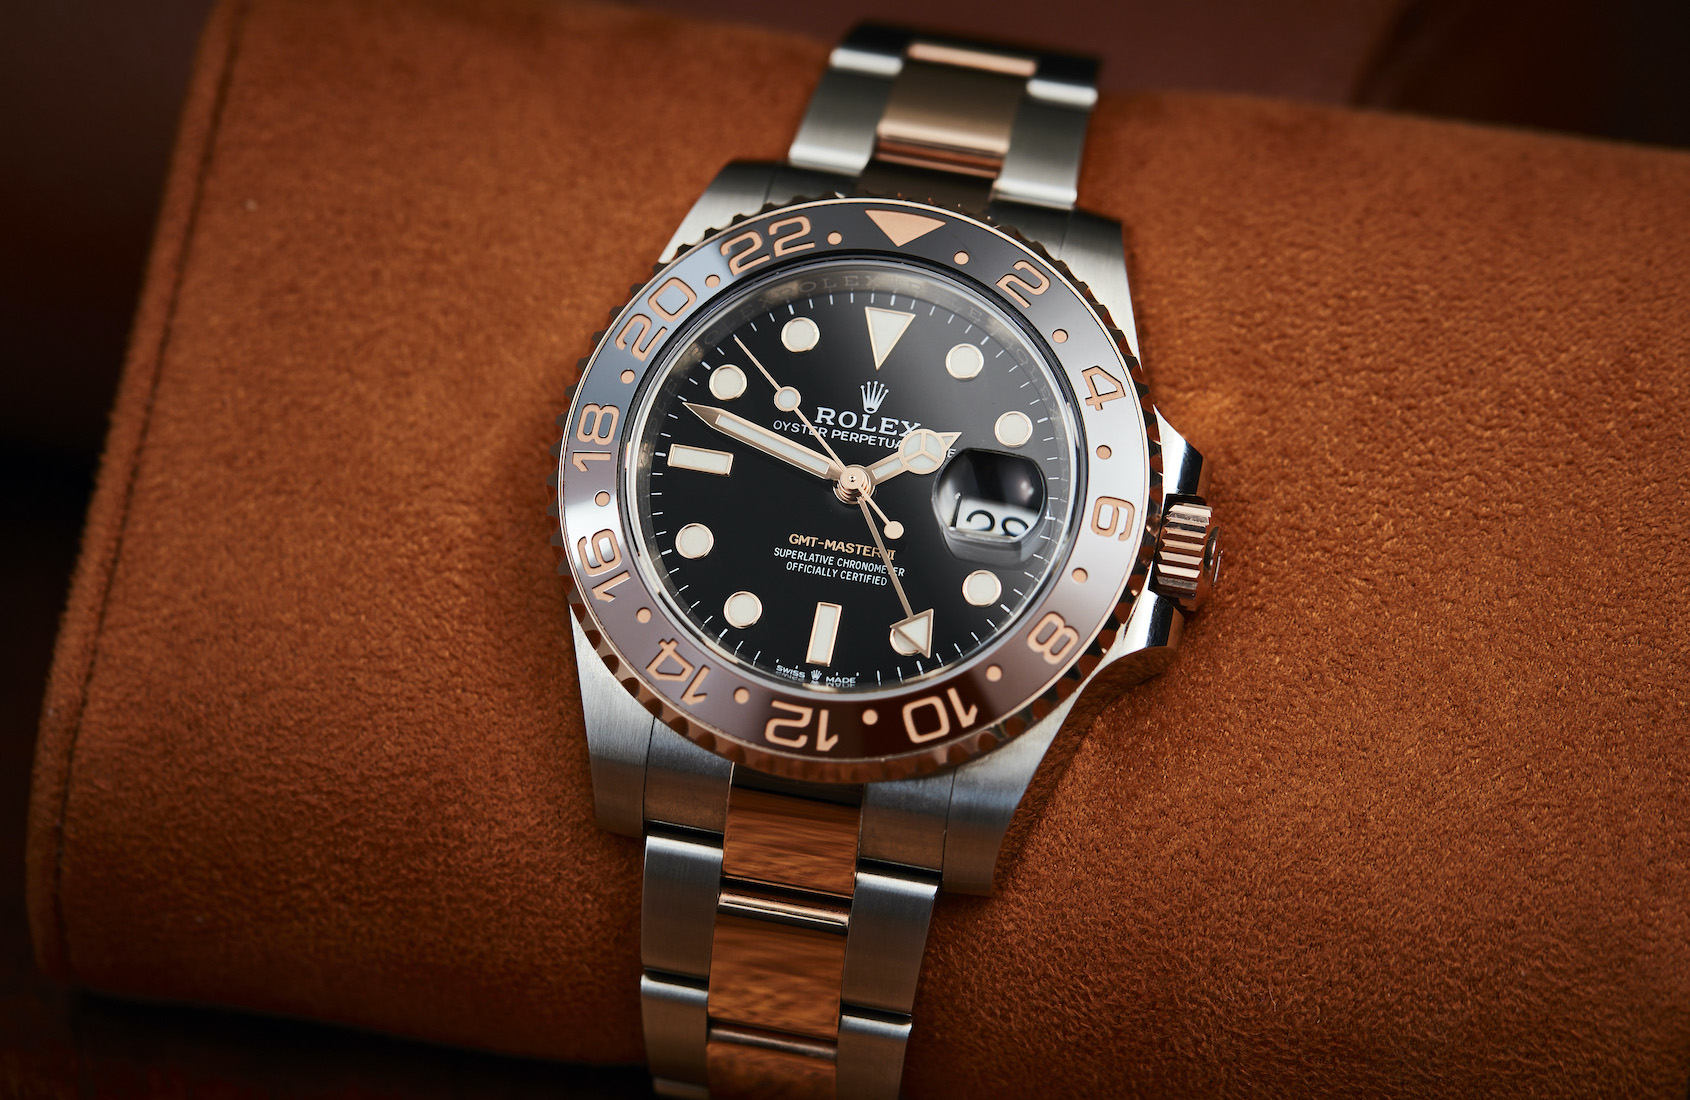 HANDS-ON: The Rolex GMT Master II Rootbeer is proof that two-tone can be a winning investment